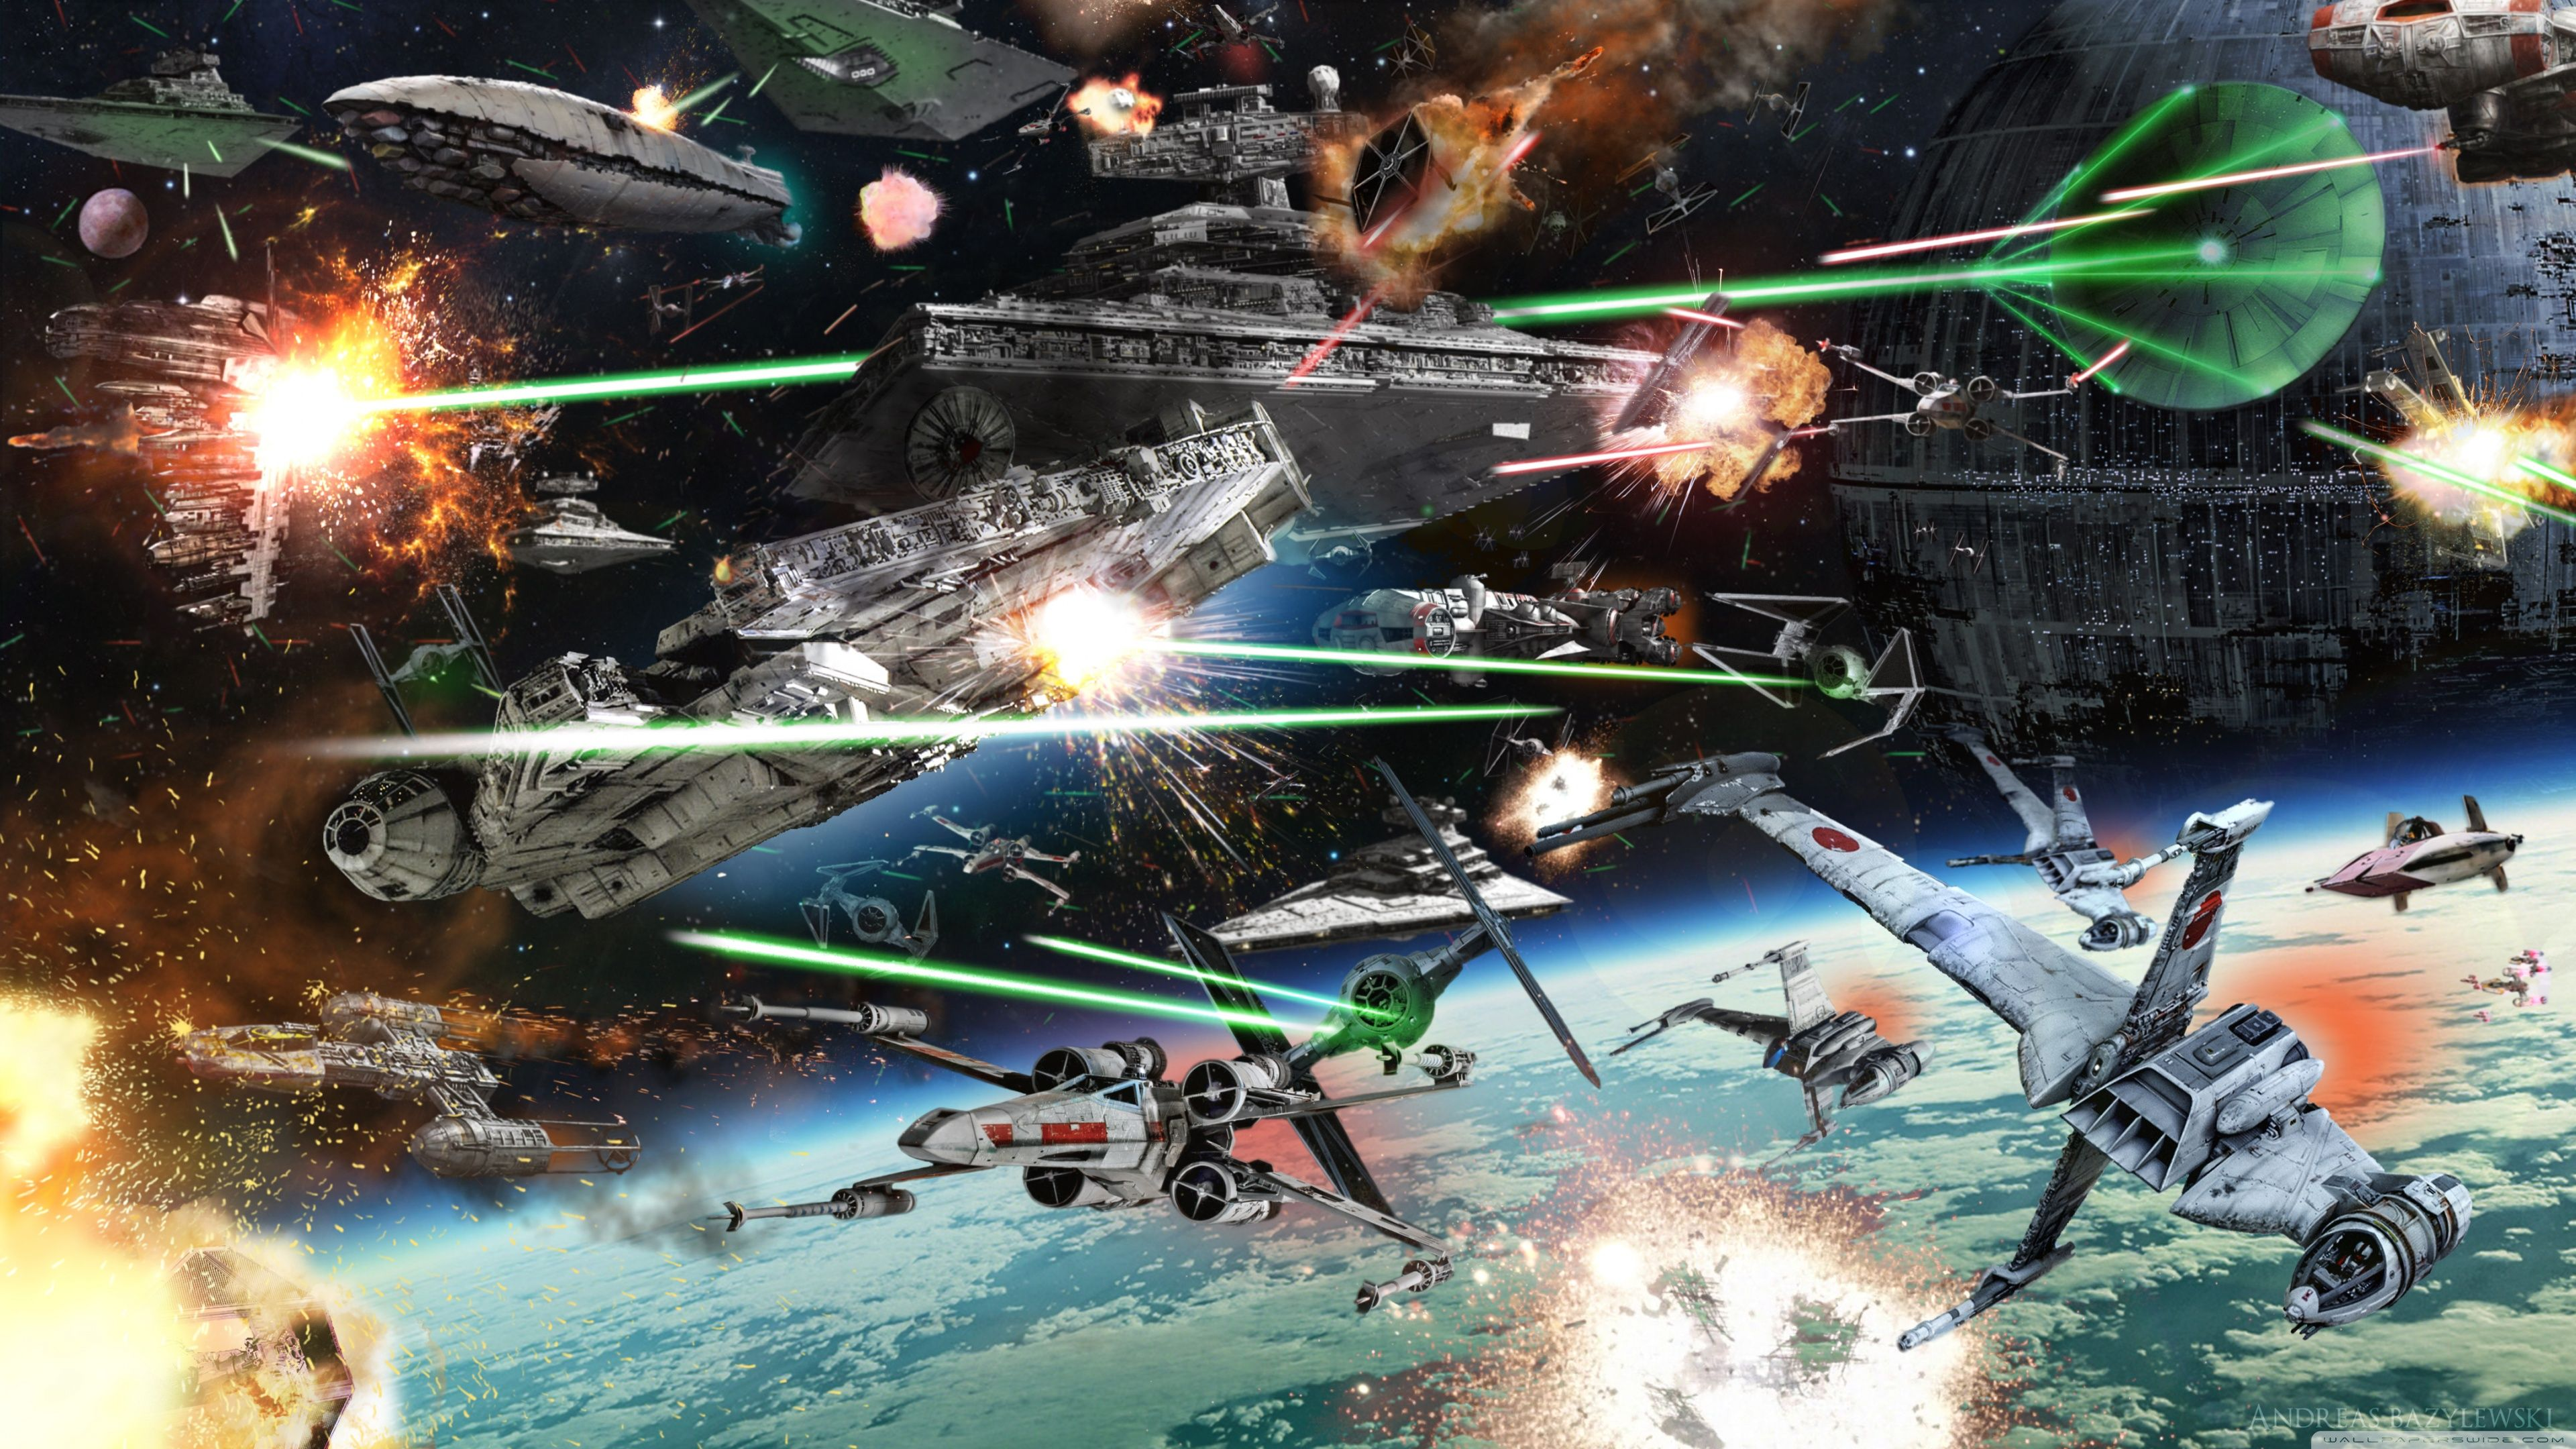 10 New Star Wars Clone Army Wallpaper Full Hd 1080p For Pc: 4K 16 9 Star Wars Wallpapers